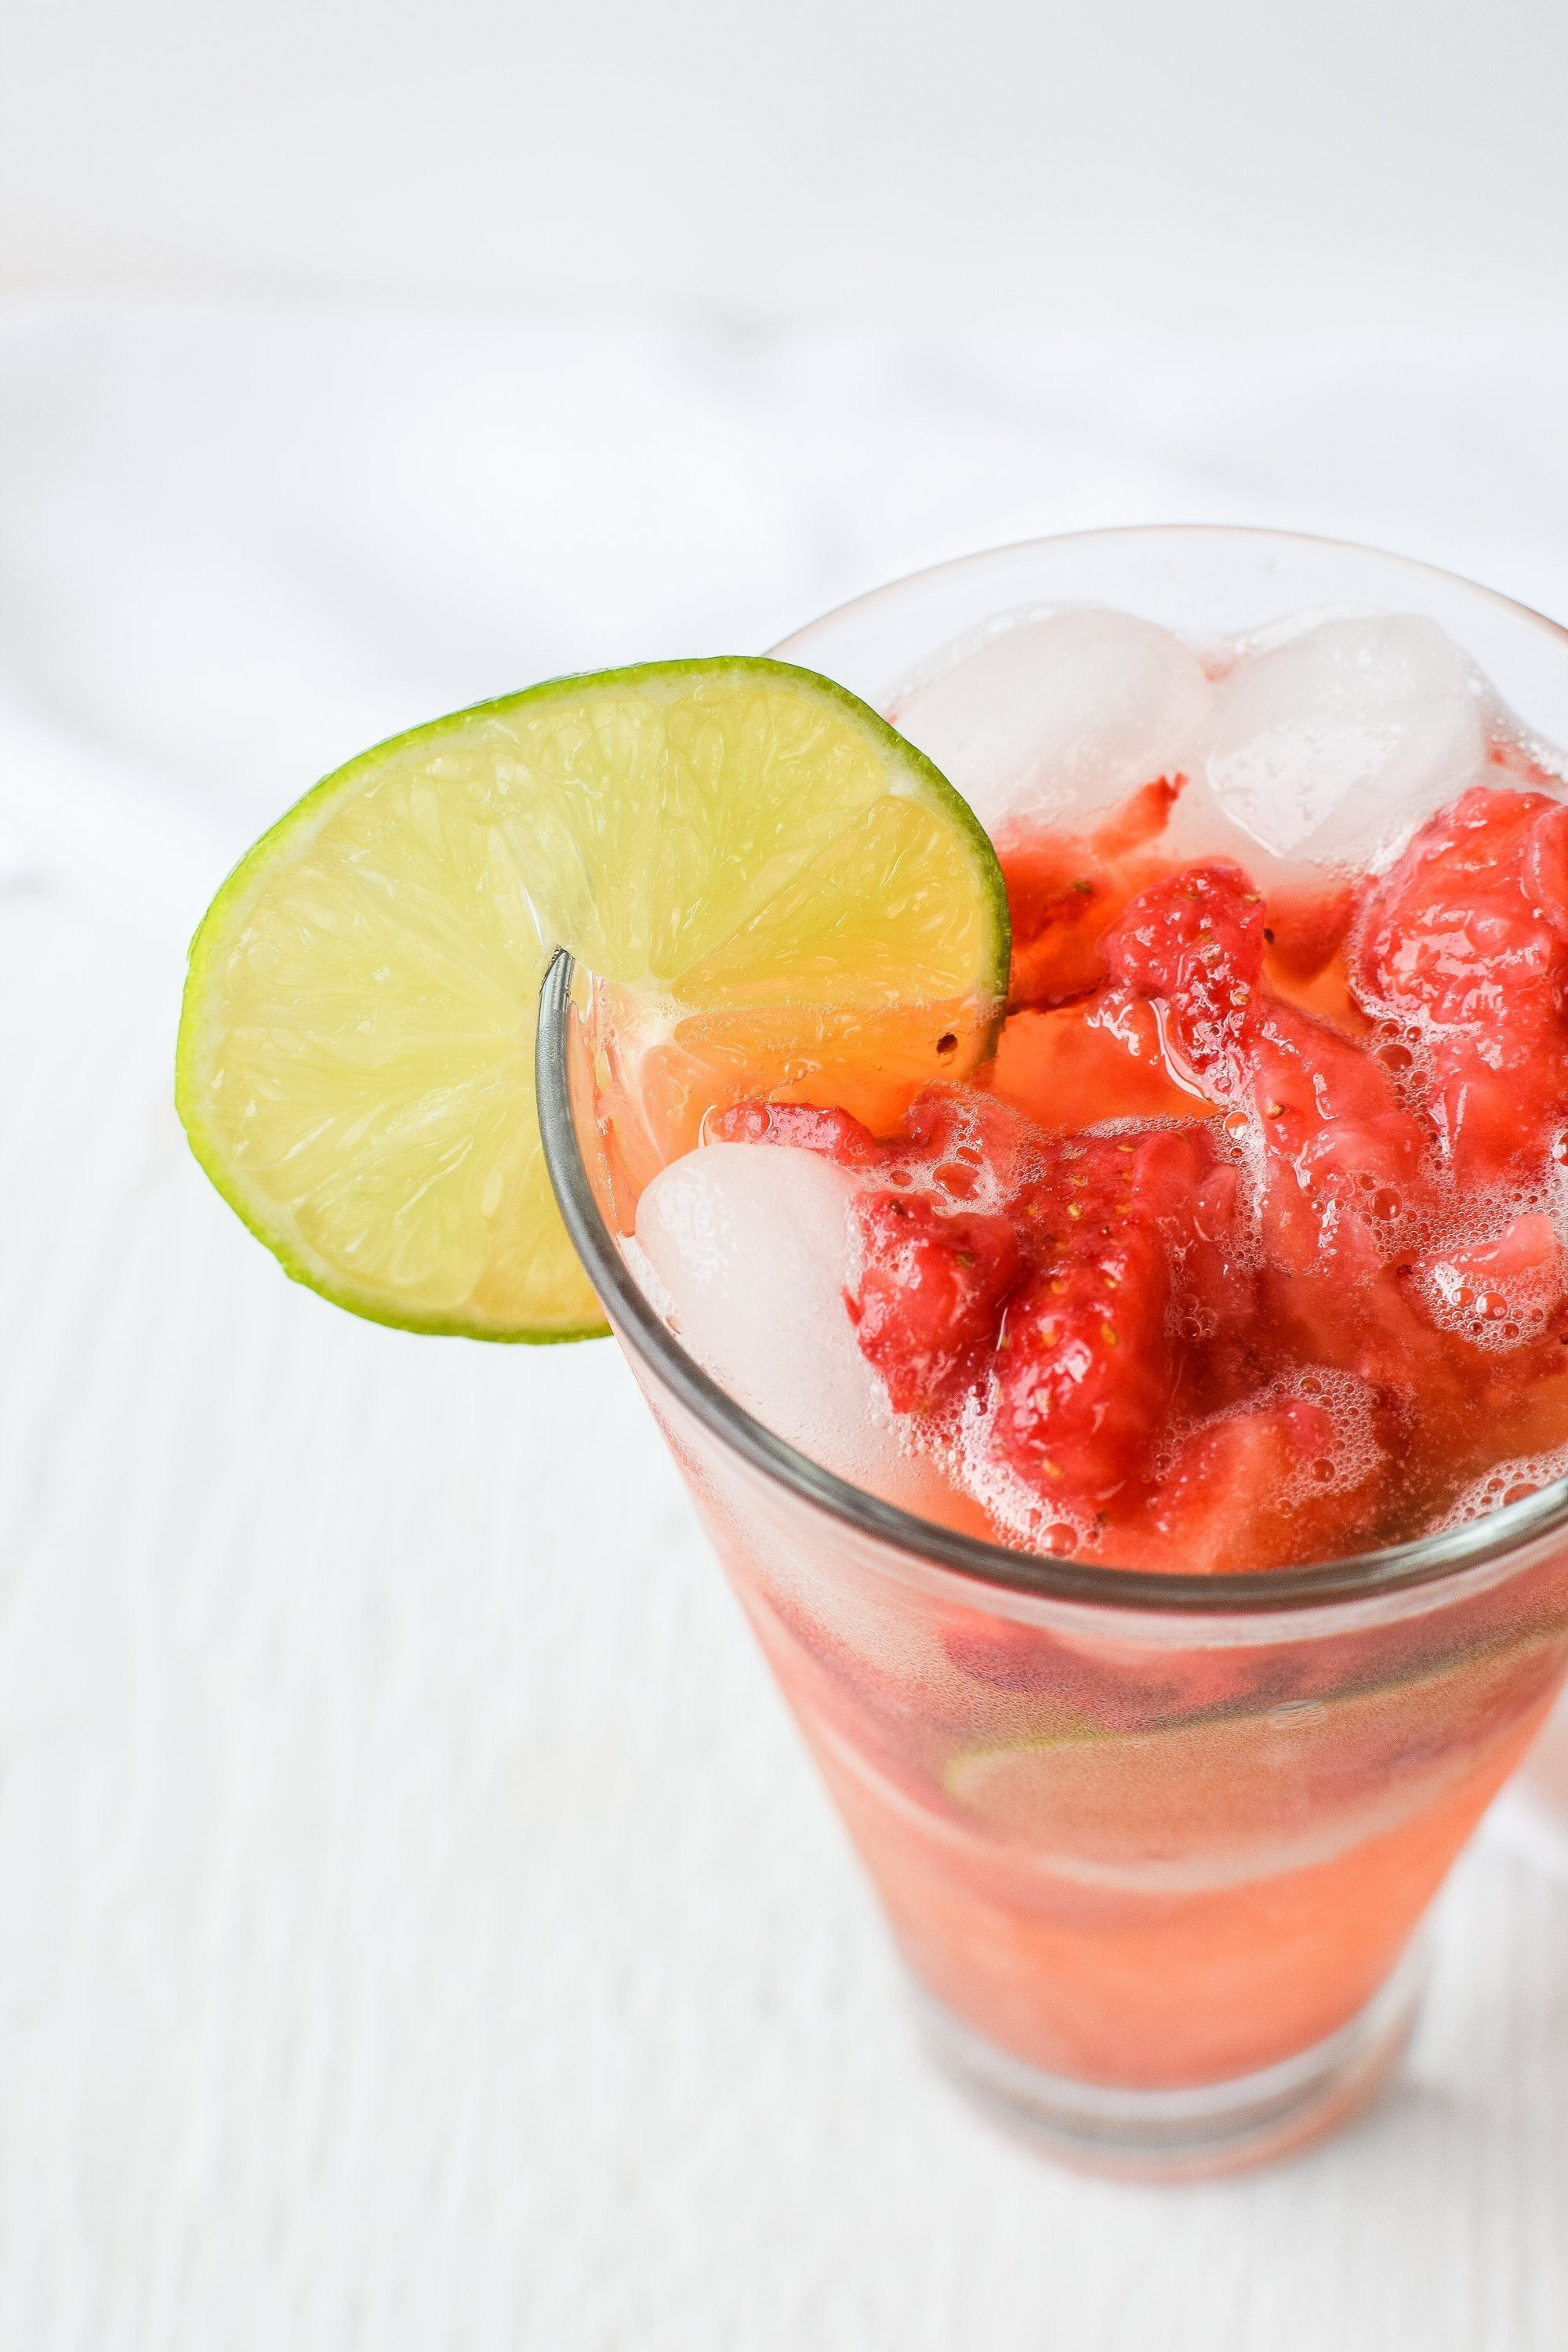 Strawberry Lime Aqua Fresca